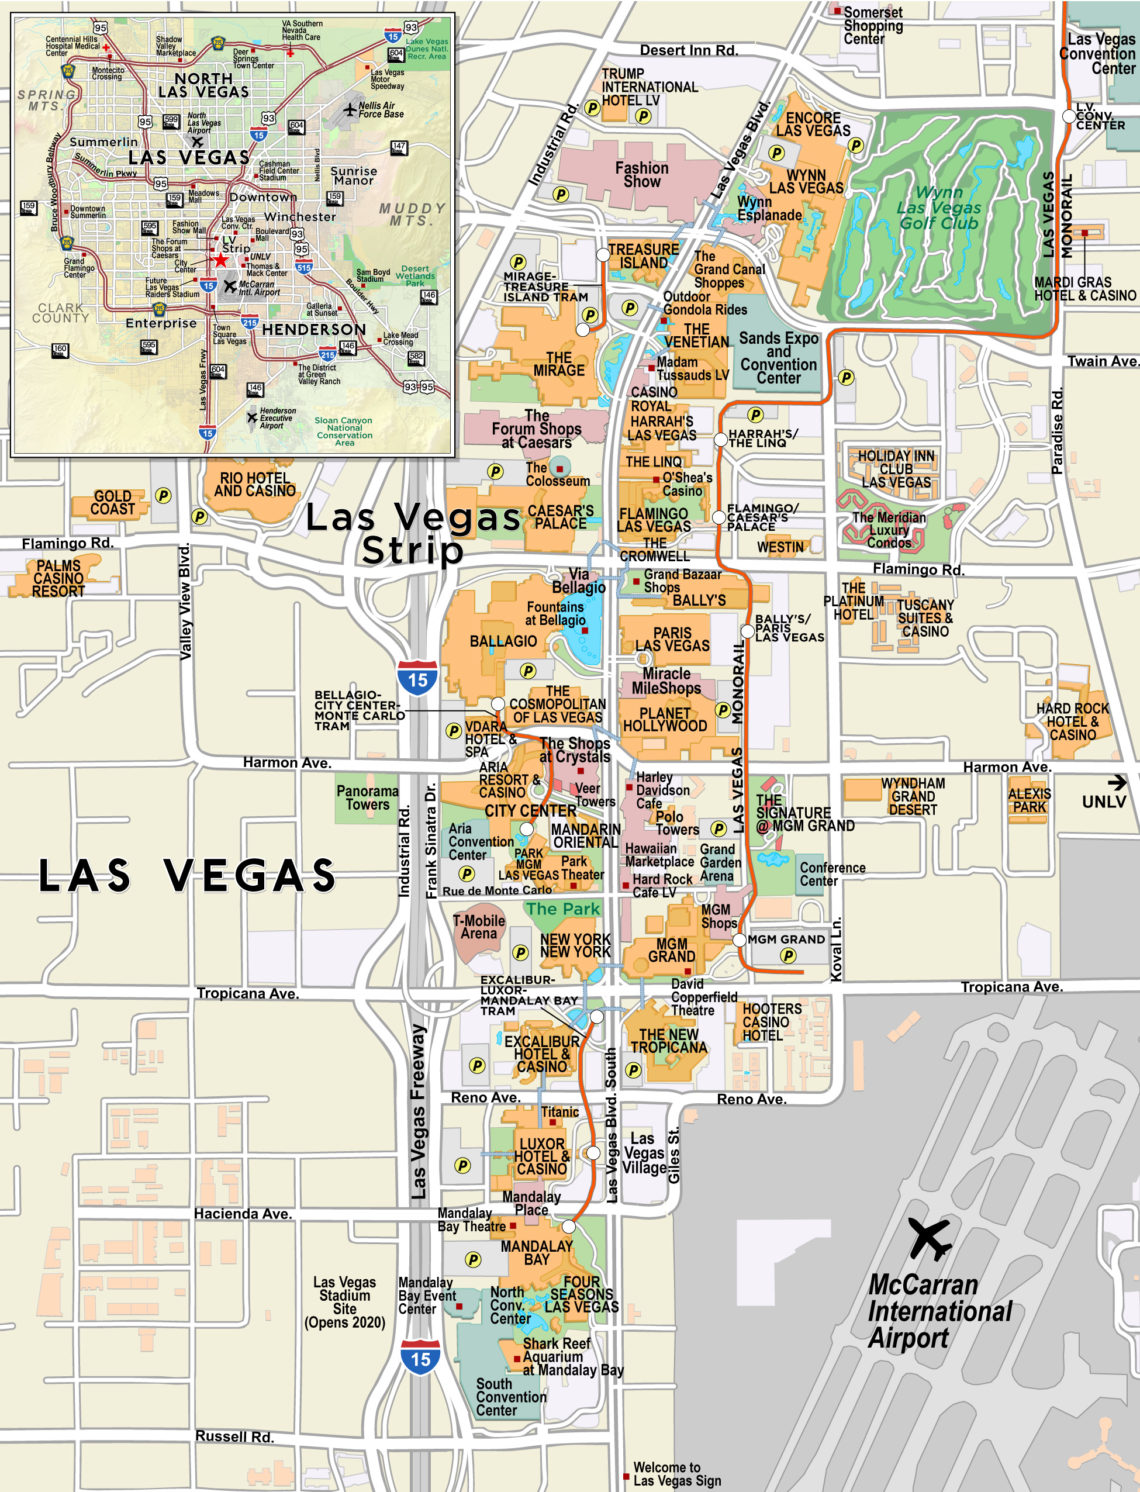 Las Vegas Casinos Map